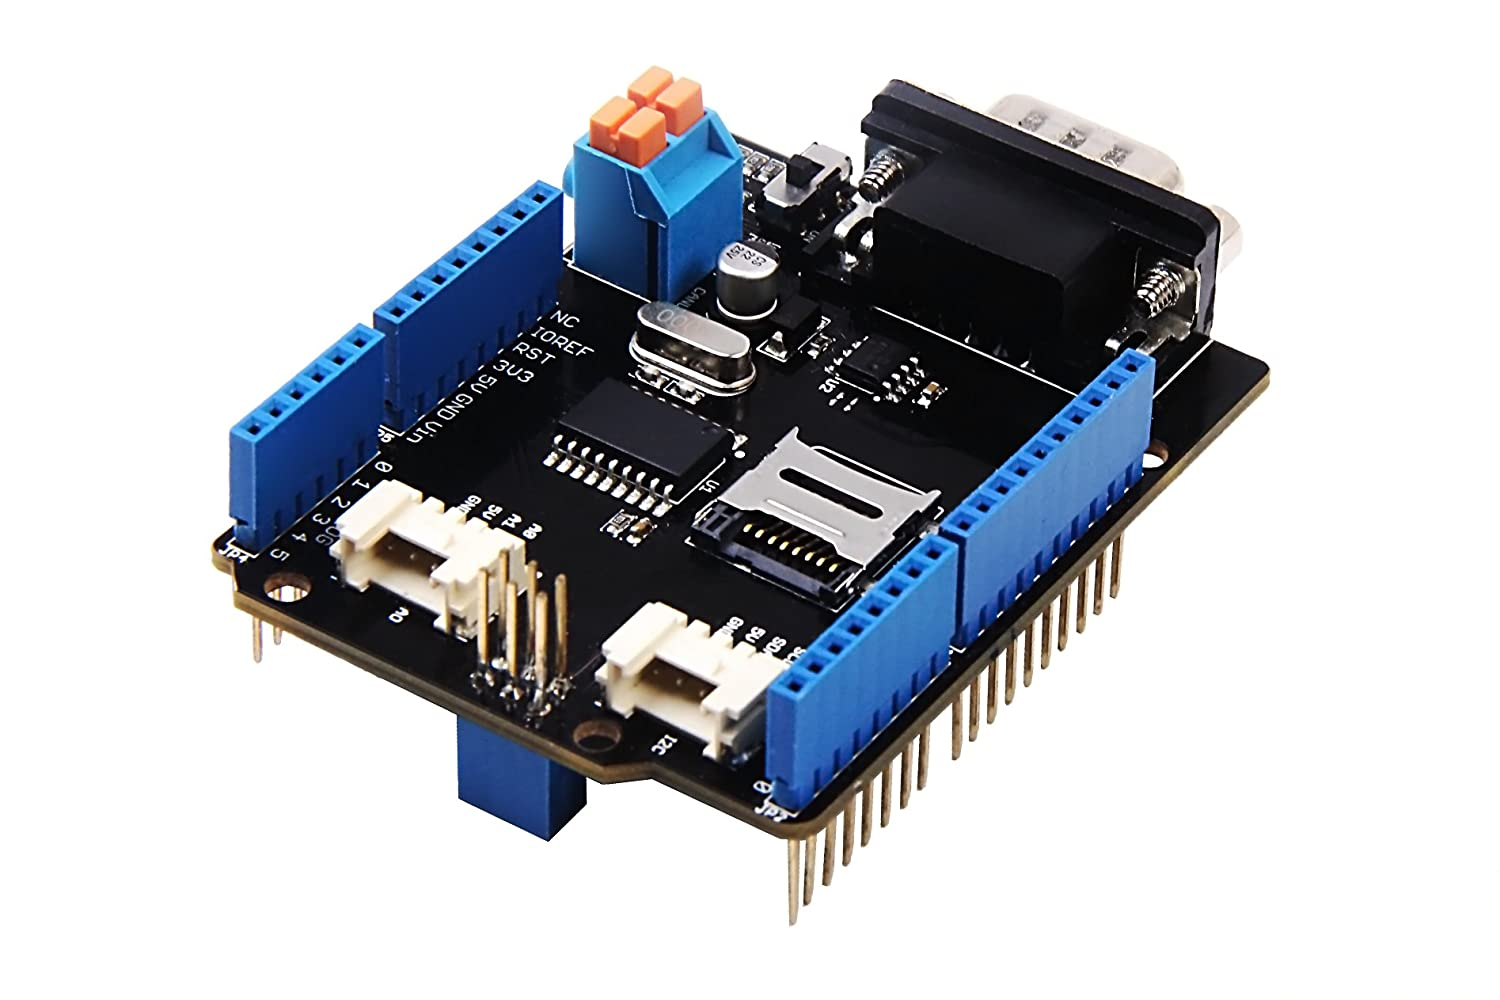 In ZIYUN CAN-BUS Shield V2,uses MCP2515 as CAN-BUS controller and MCP2551 as CAN transceiver,protocol communication board compatible with standard CAN interface